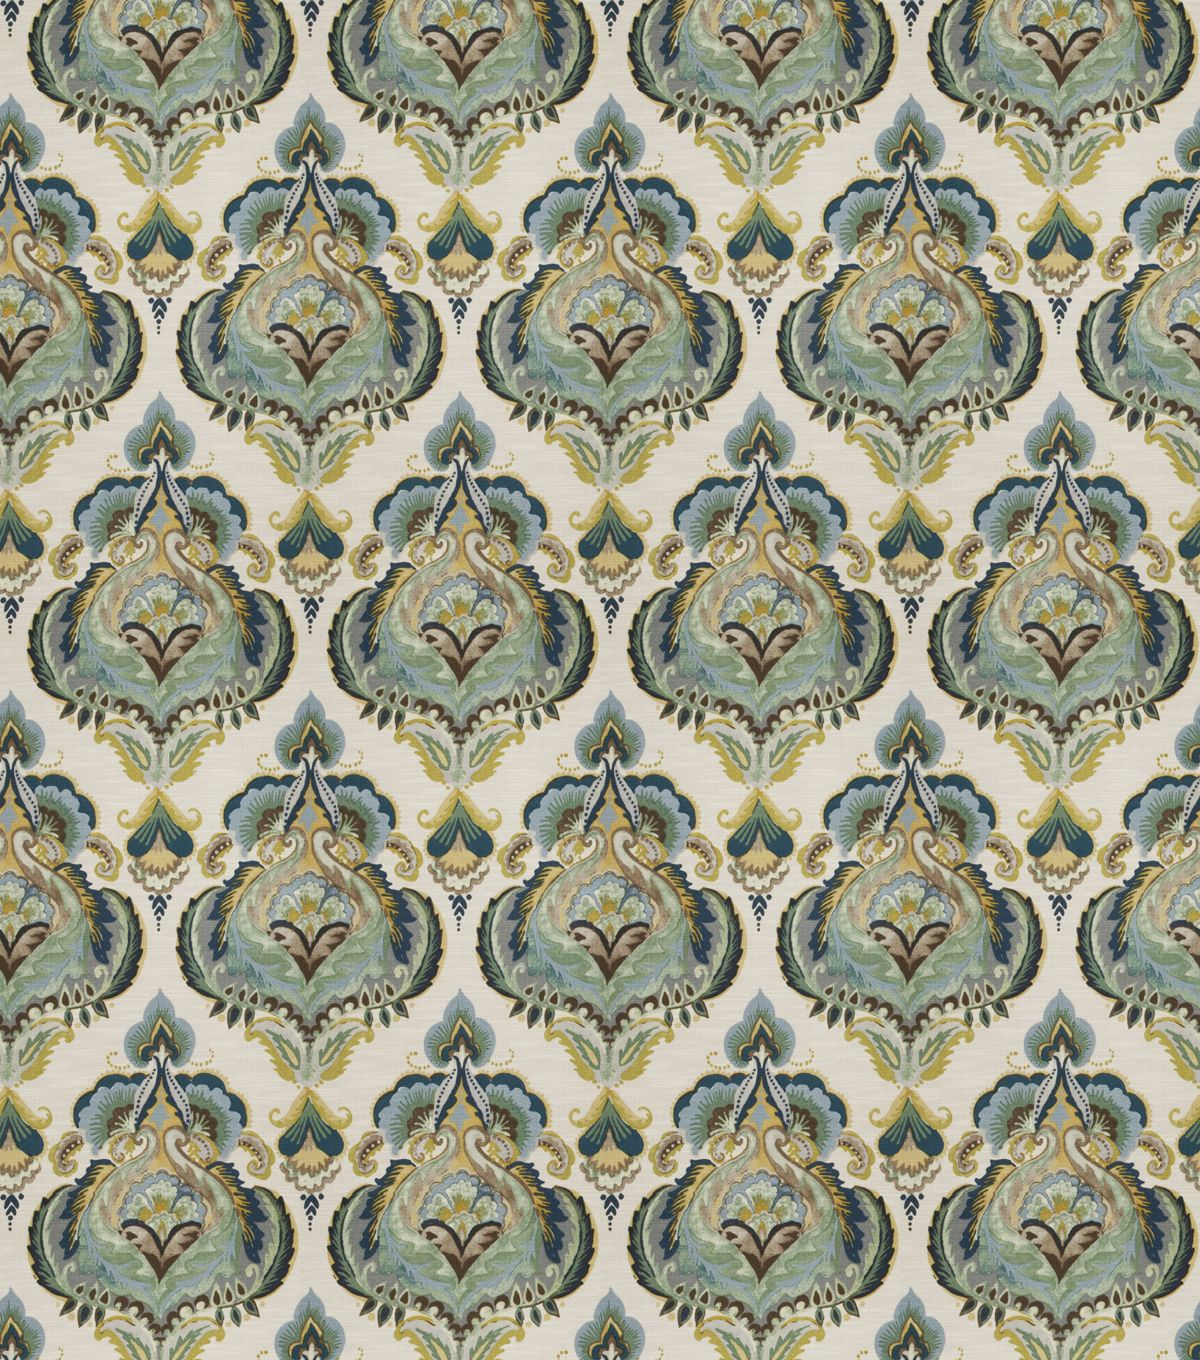 Smc Designs Upholstery Fabric Conductor Orion Master Bedroom